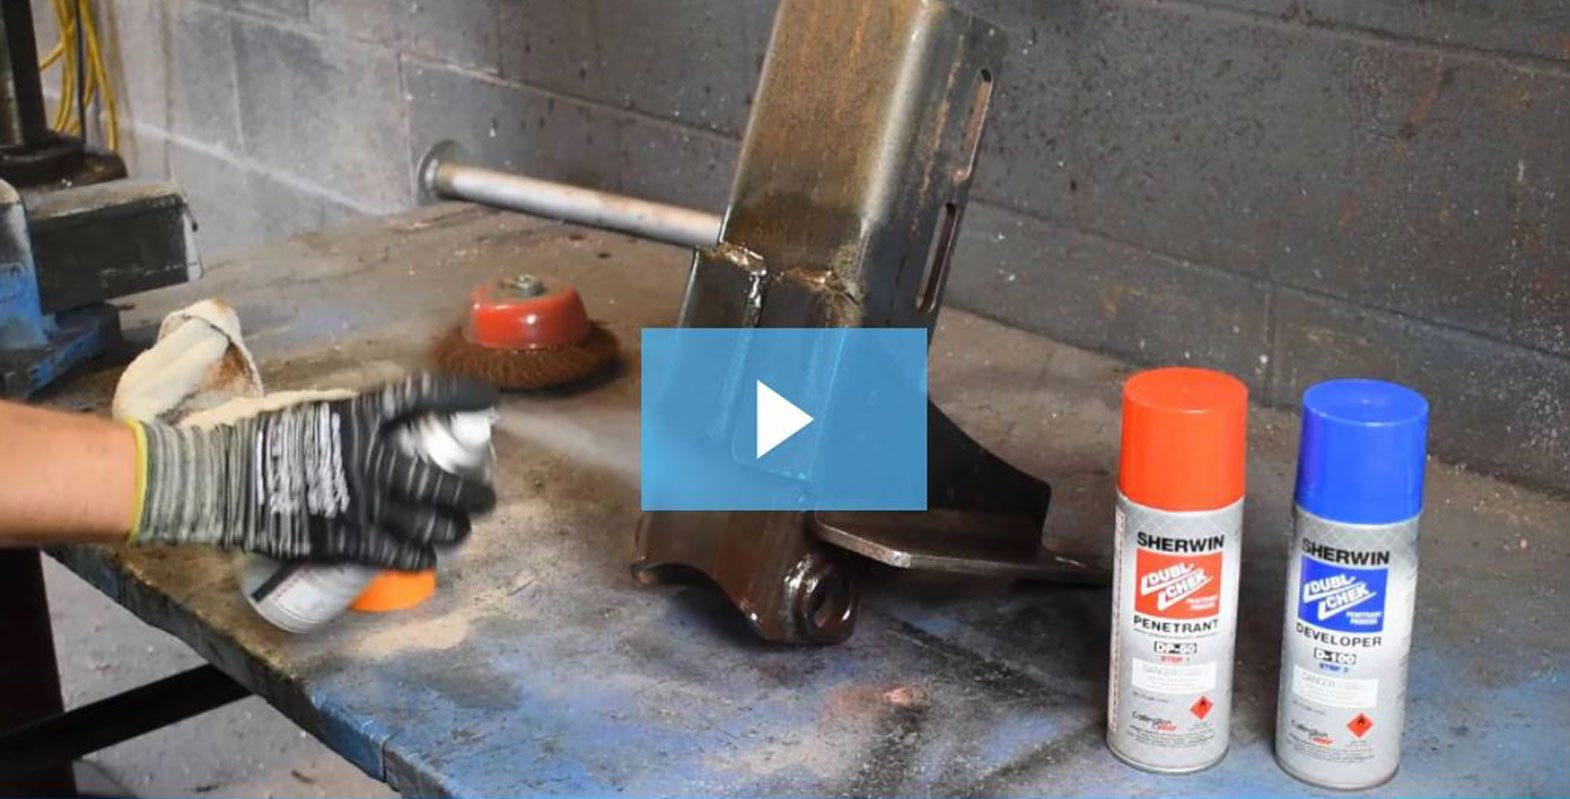 How to test for welding flaws with Sherwin NDT